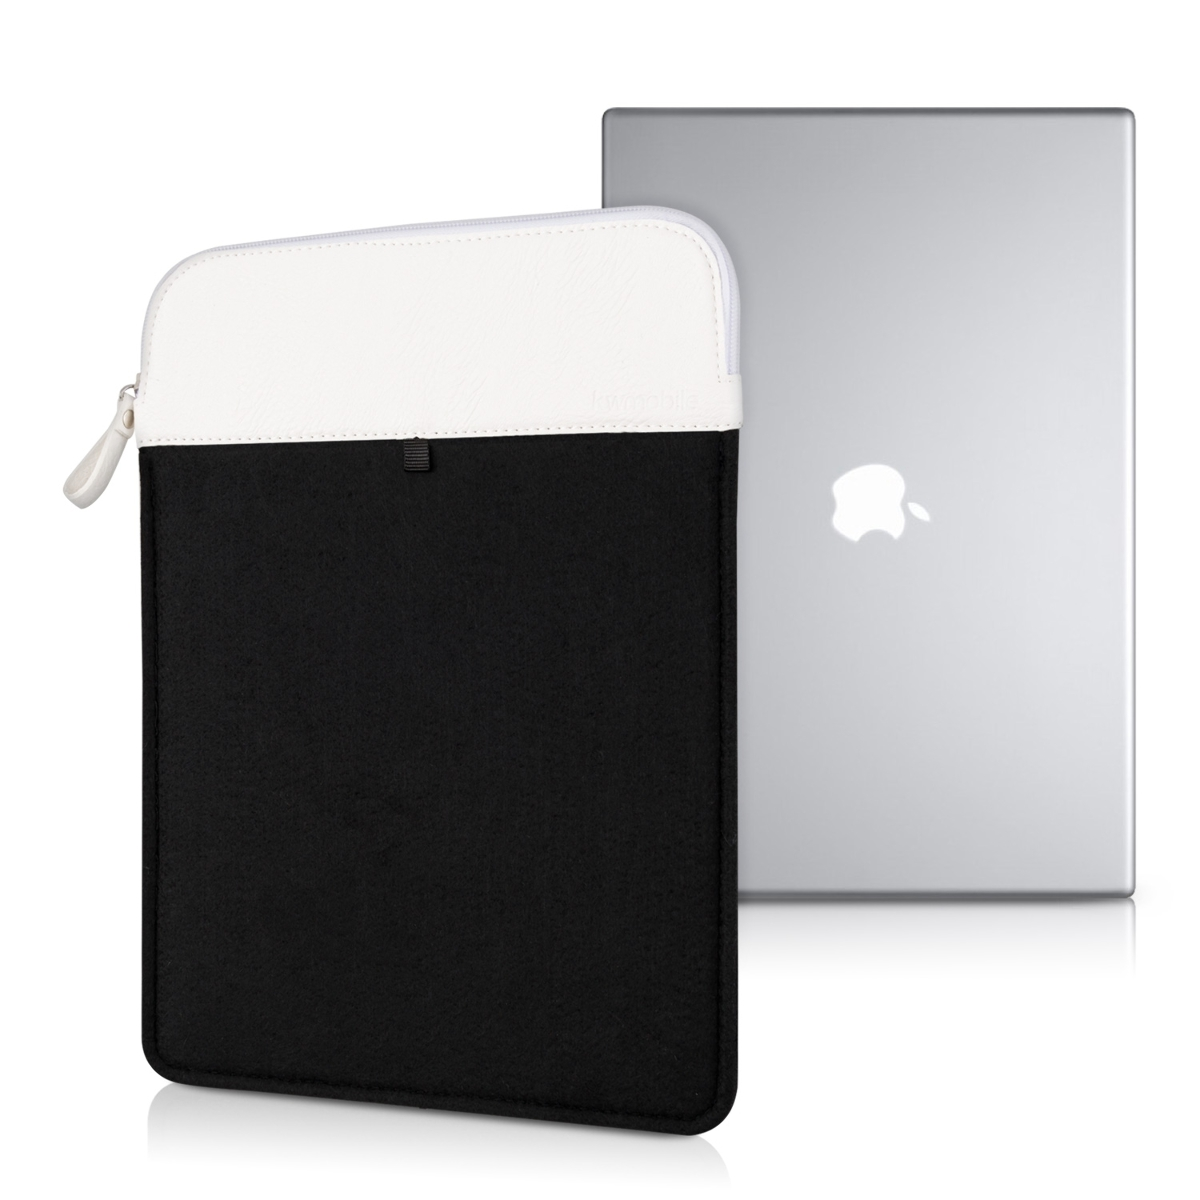 Housse protection pour apple macbook pro 13 retina for Housse macbook pro retina